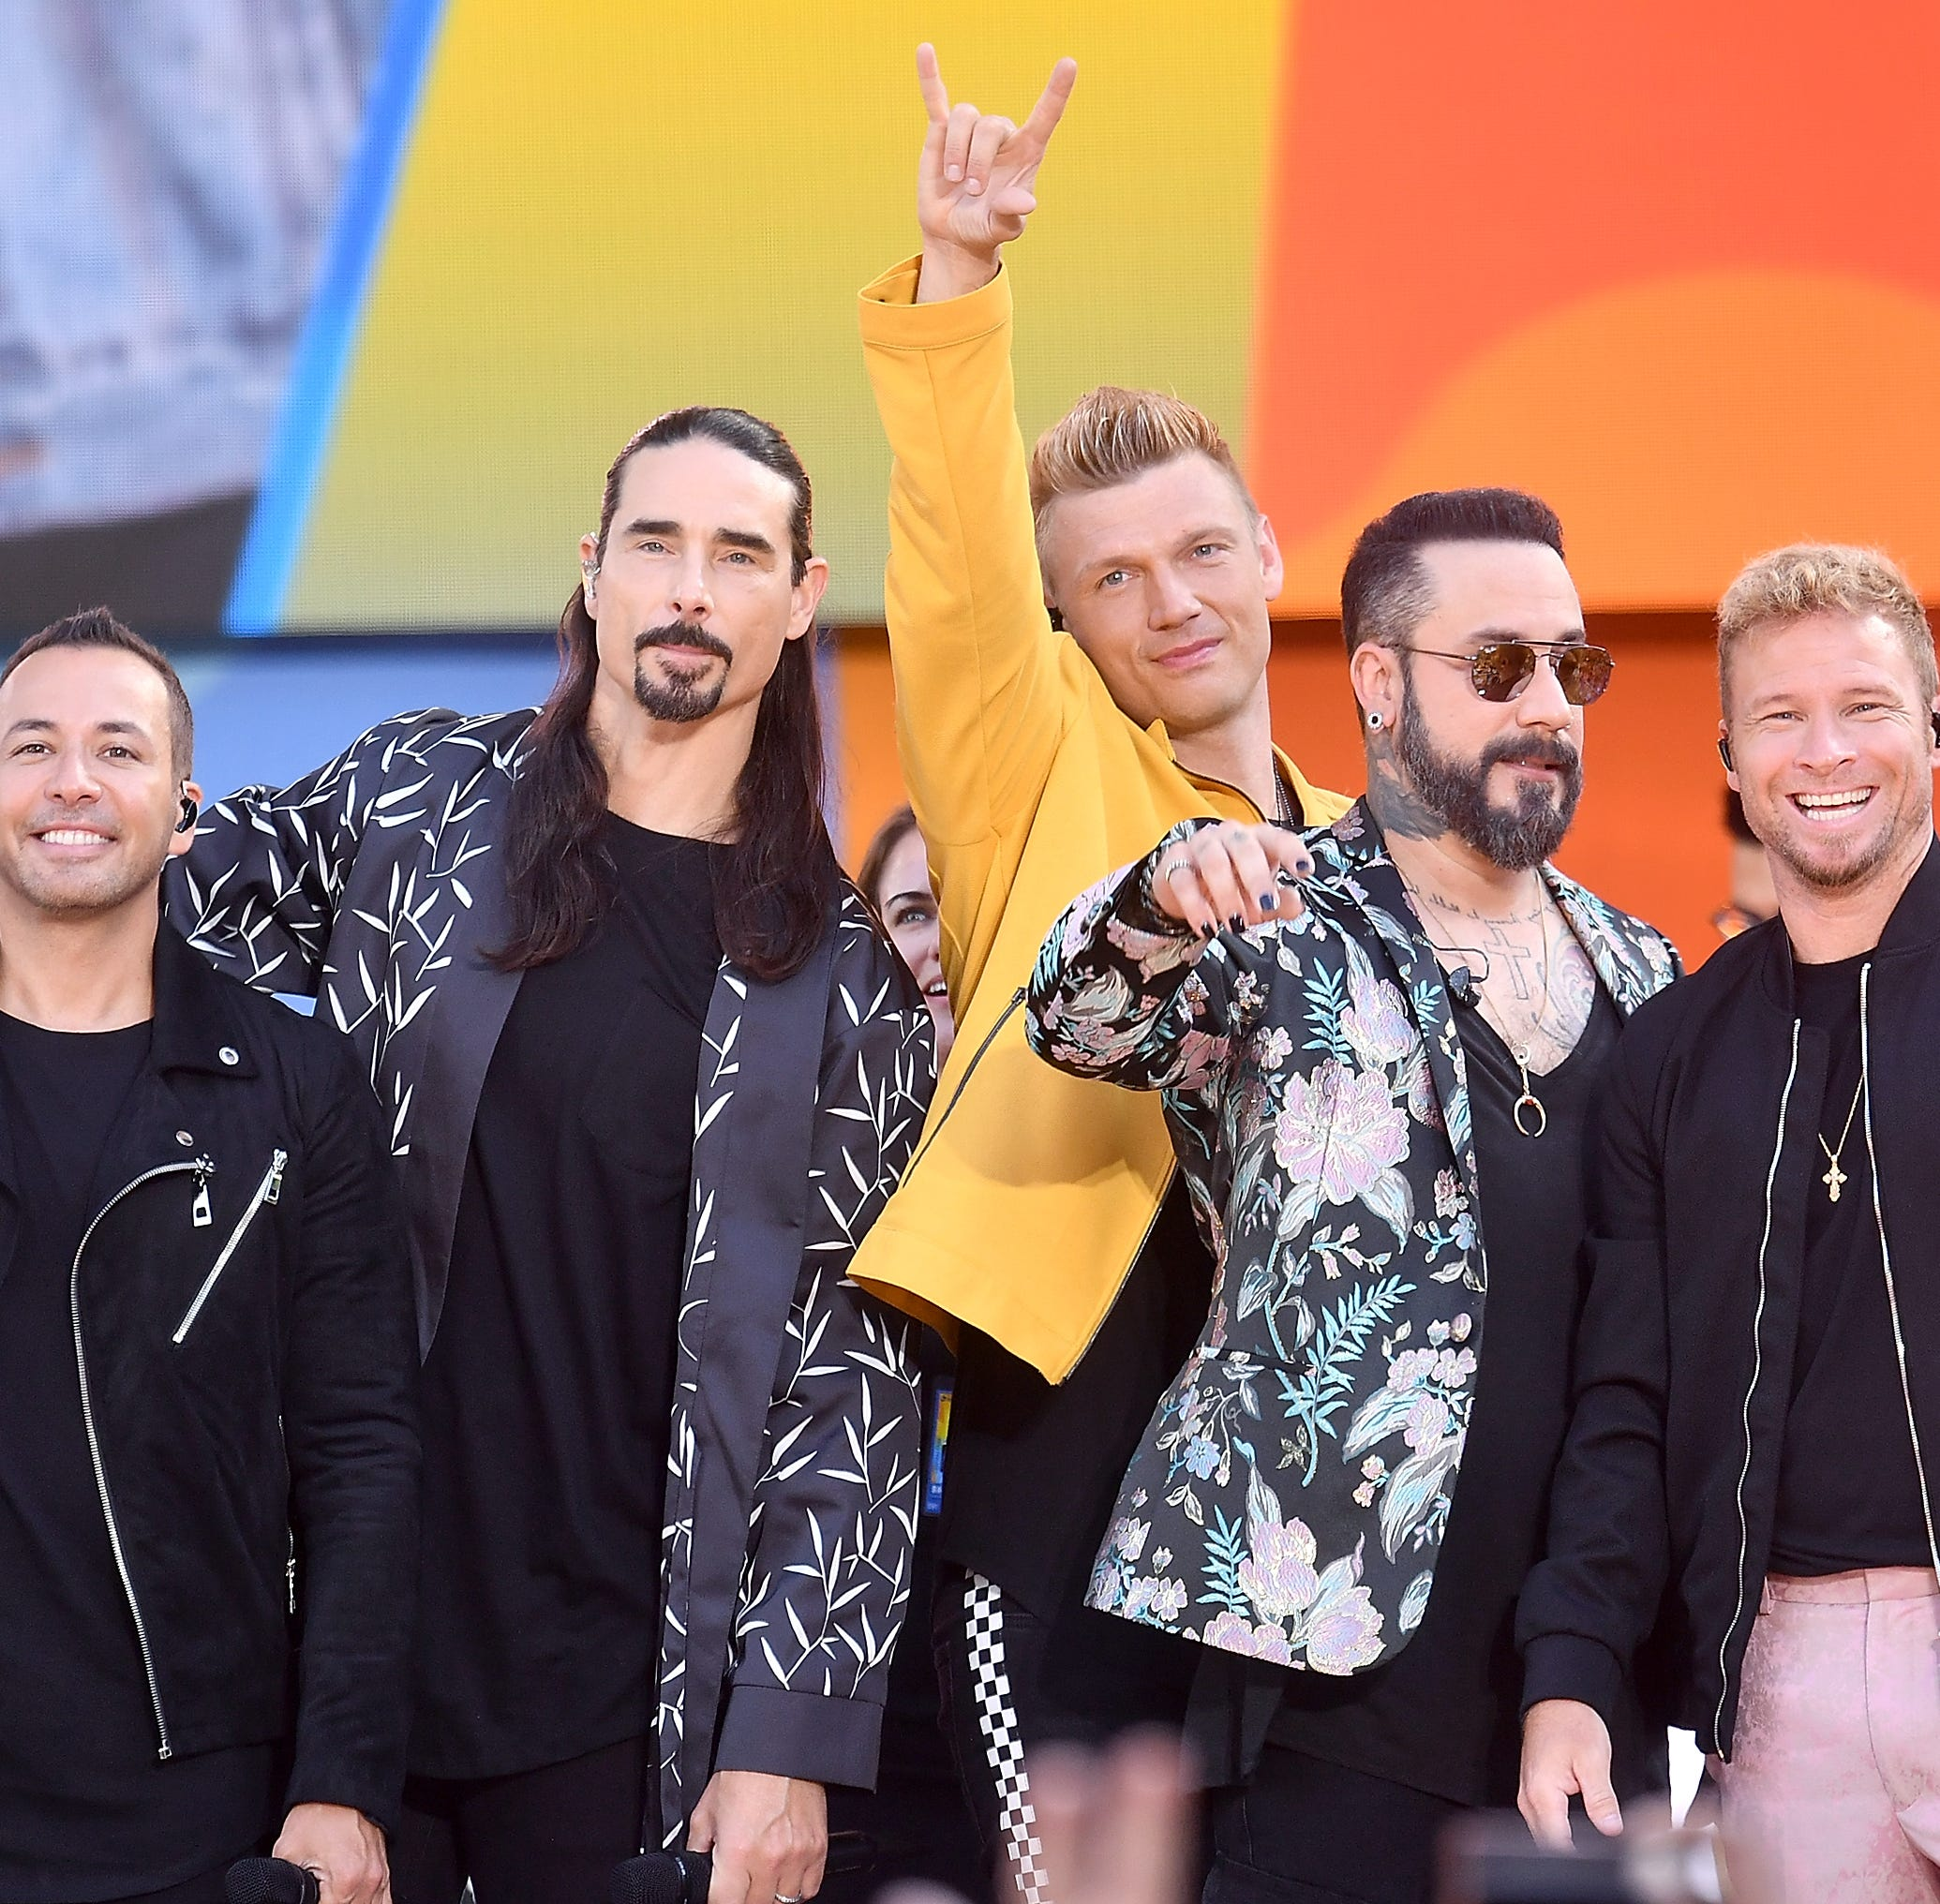 """NEW YORK, NY - JULY 13:  (L-R) Howie D., Kevin Richardson, Nick Carter, AJ McLean and Brian Littrell of the Backstreet Boys perform on ABC's """"Good Morning America"""" at SummerStage at Rumsey Playfield, Central Park on July 13, 2018 in New York City.  (Photo by Michael Loccisano/Getty Images) ORG XMIT: 775184599 ORIG FILE ID: 997733102"""